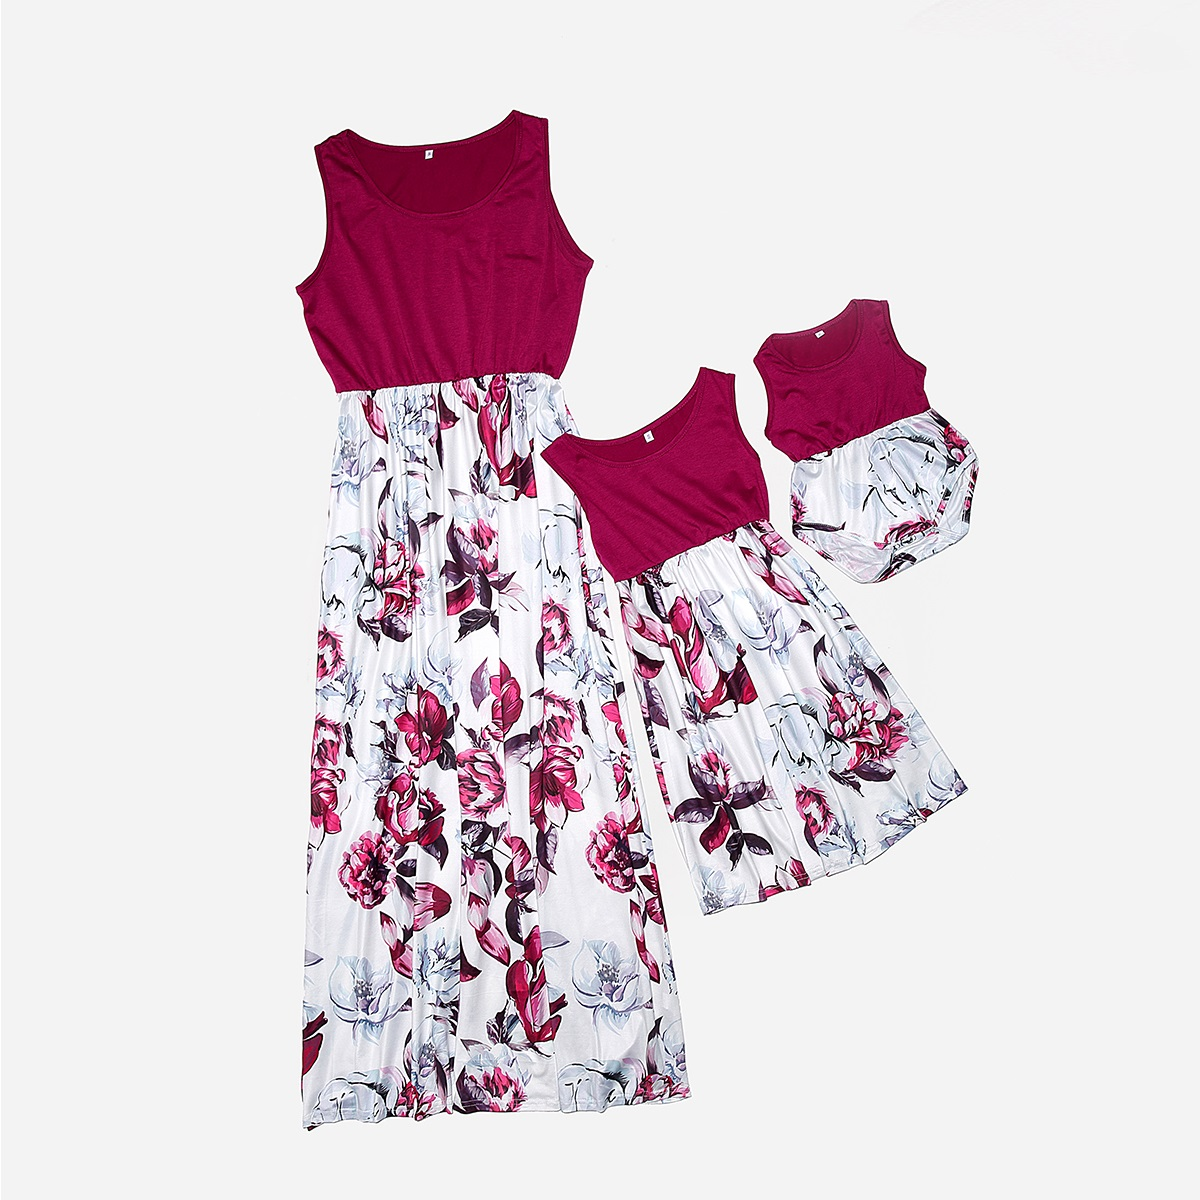 Sleeveless Mother Daughter Dresses Family Look Mommy And Me Clothes Floral Print High Waist Mom Mum Baby Matching Dress Outfits